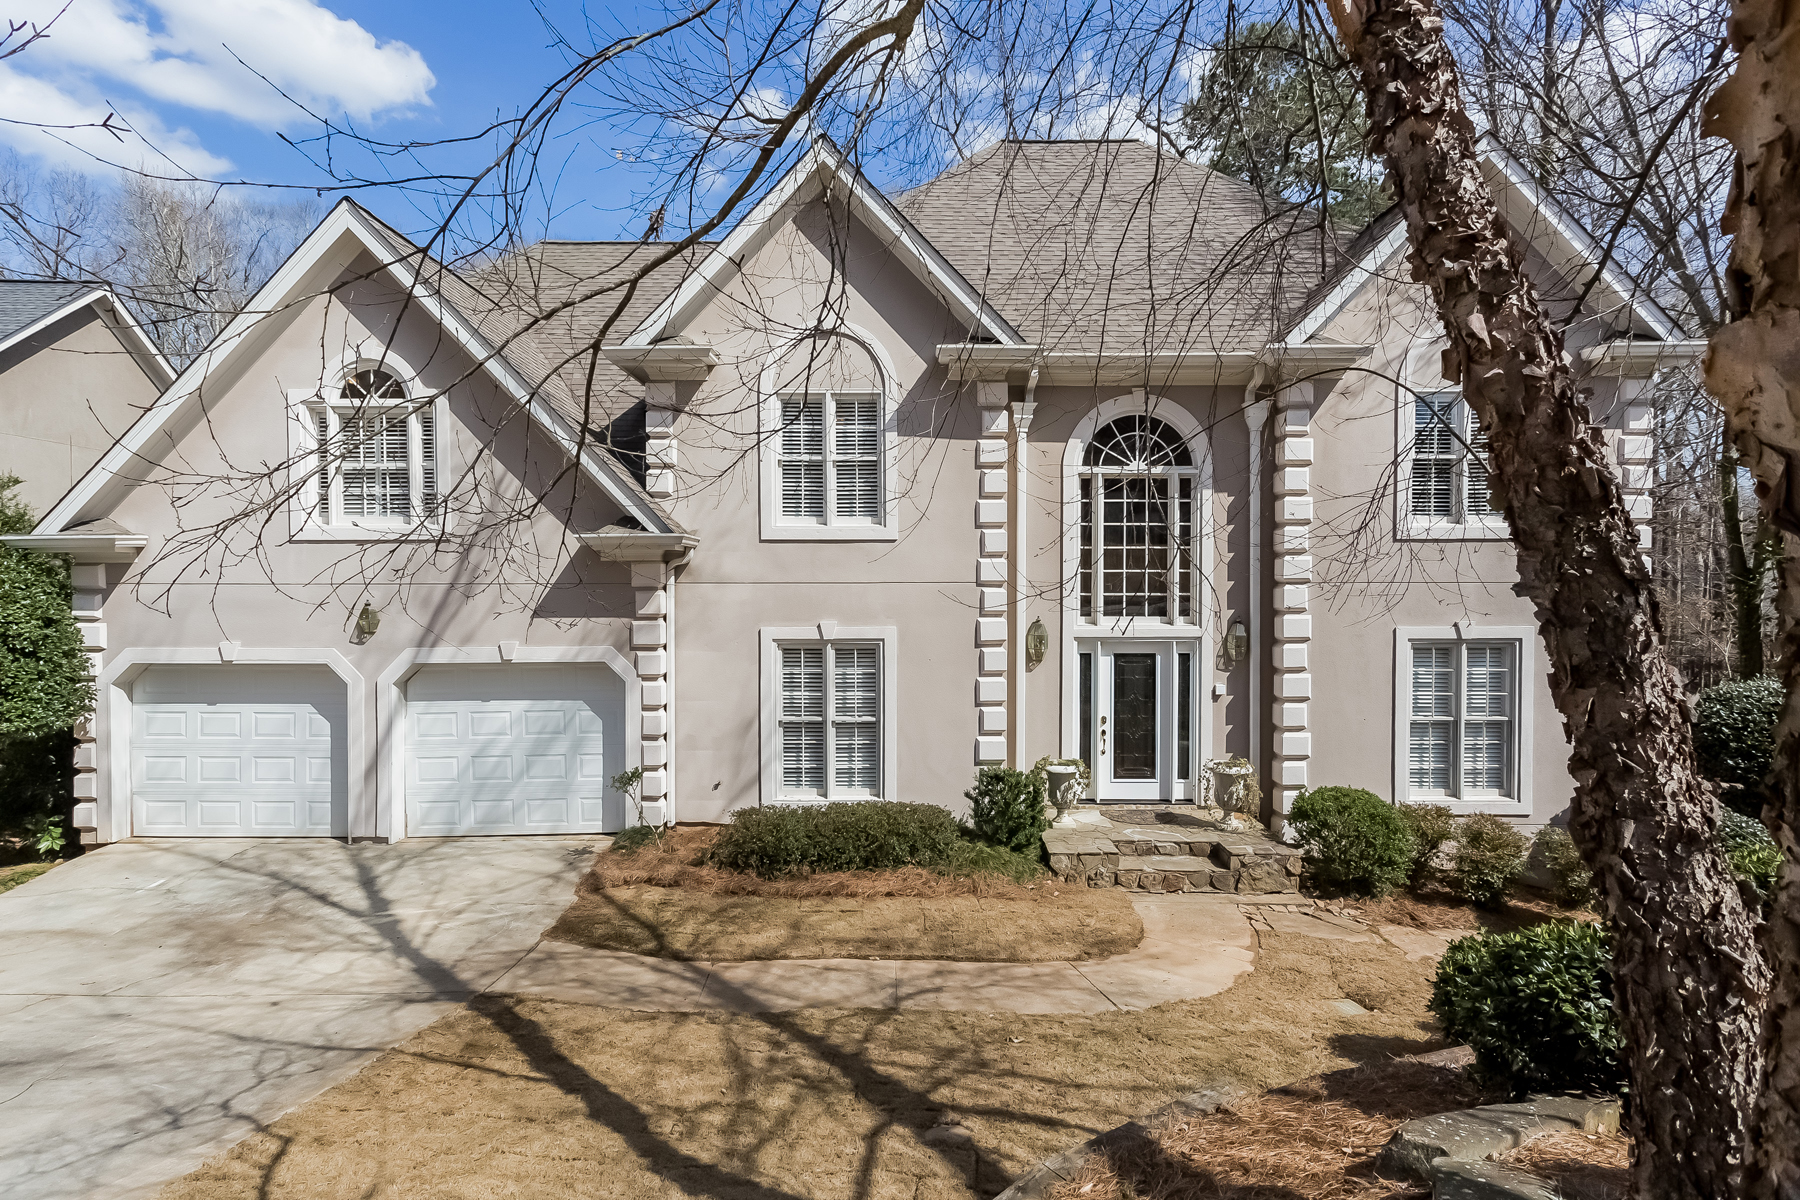 단독 가정 주택 용 임대 에 Updated Home In Desirable Horseshoe Bend 155 Willow Brook Drive Roswell, 조지아 30076 미국